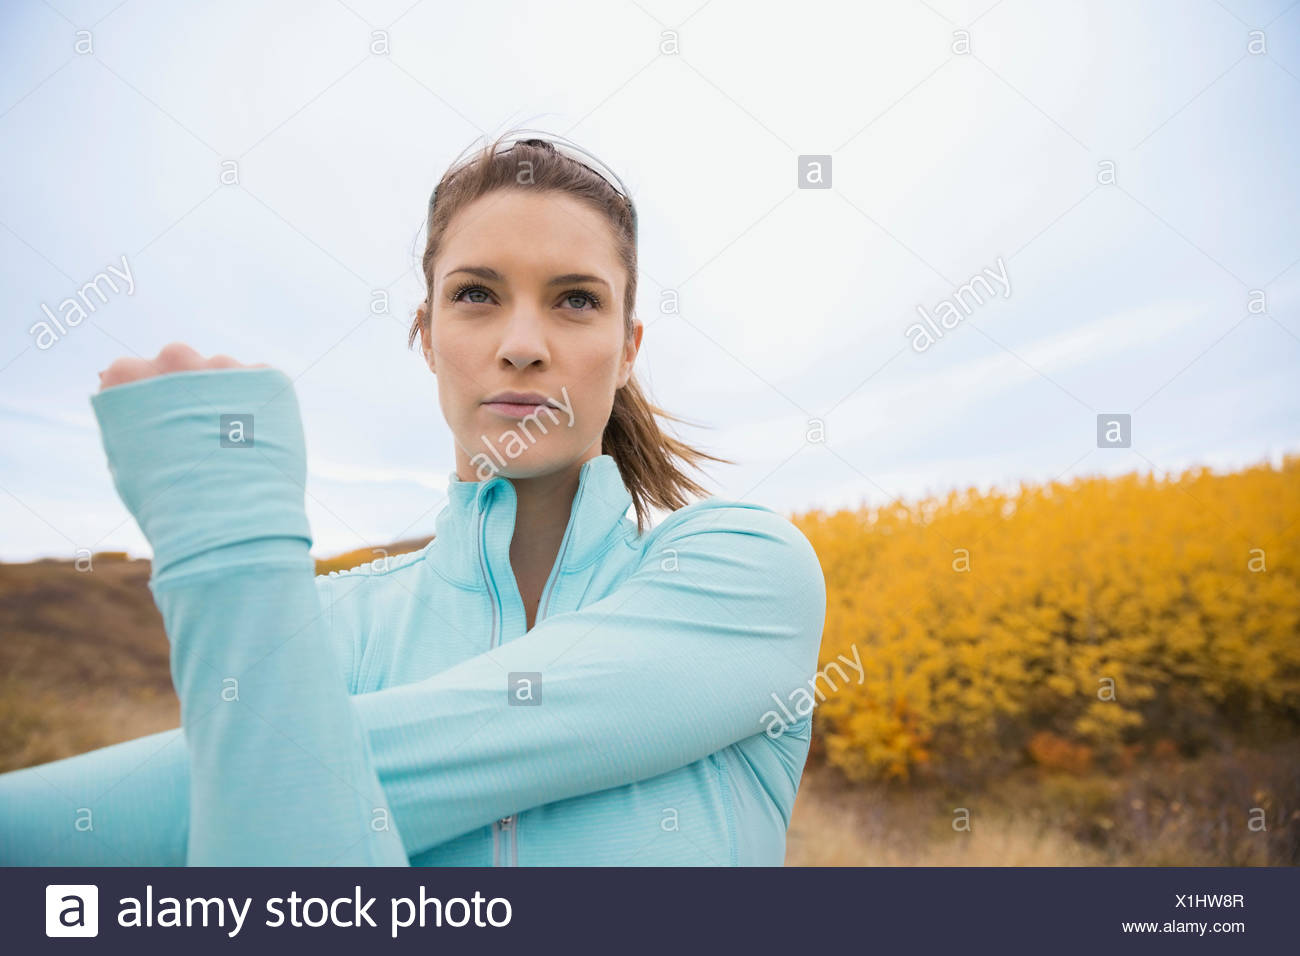 Runner stretching arm - Stock Image